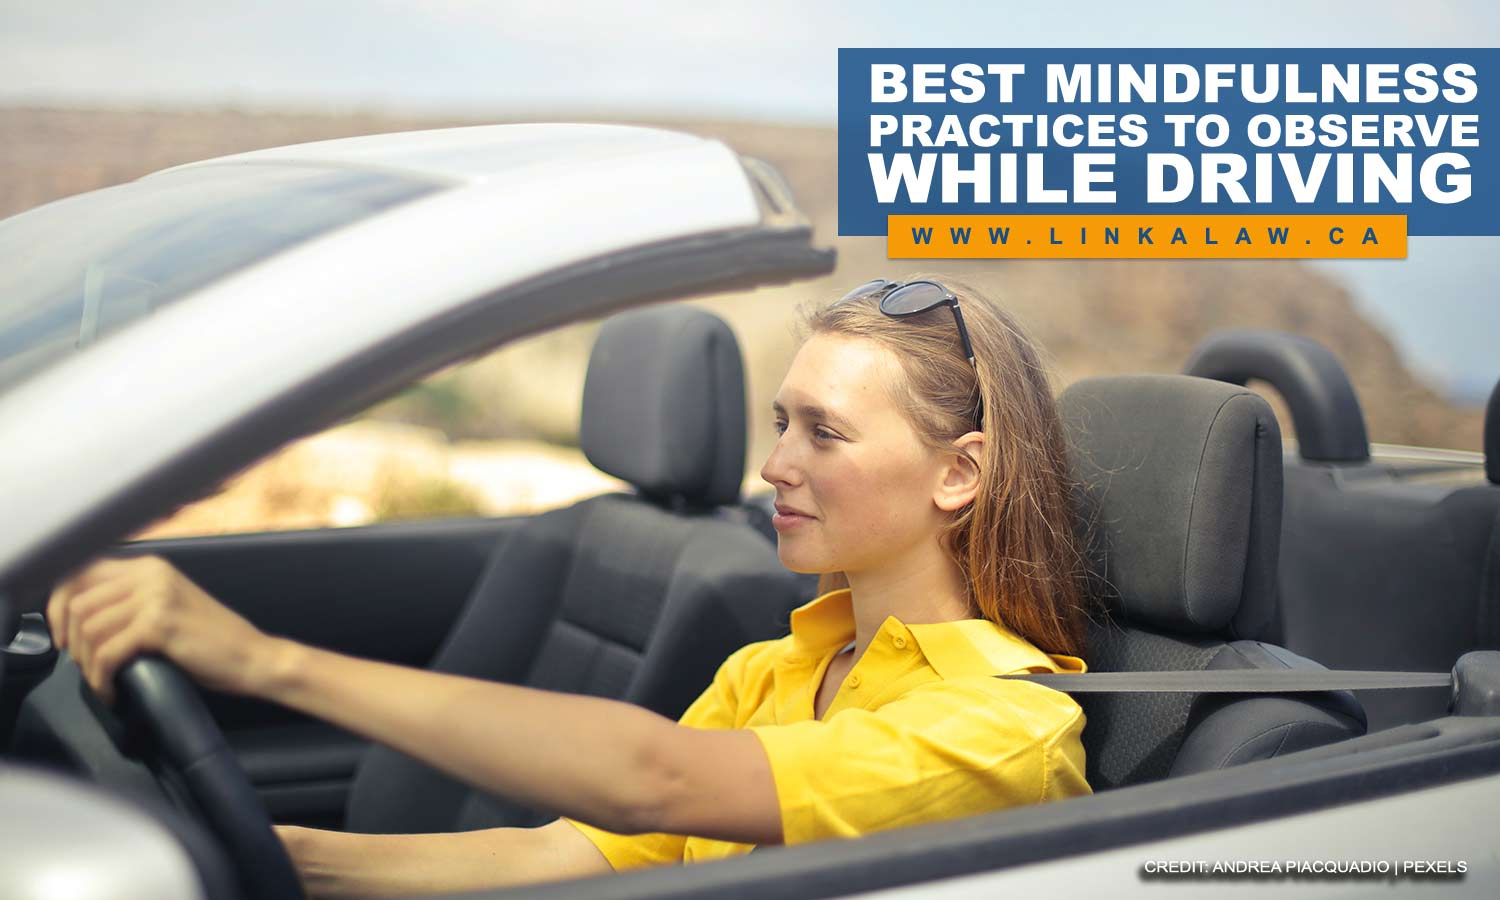 Best Mindfulness Practices To Observe While Driving